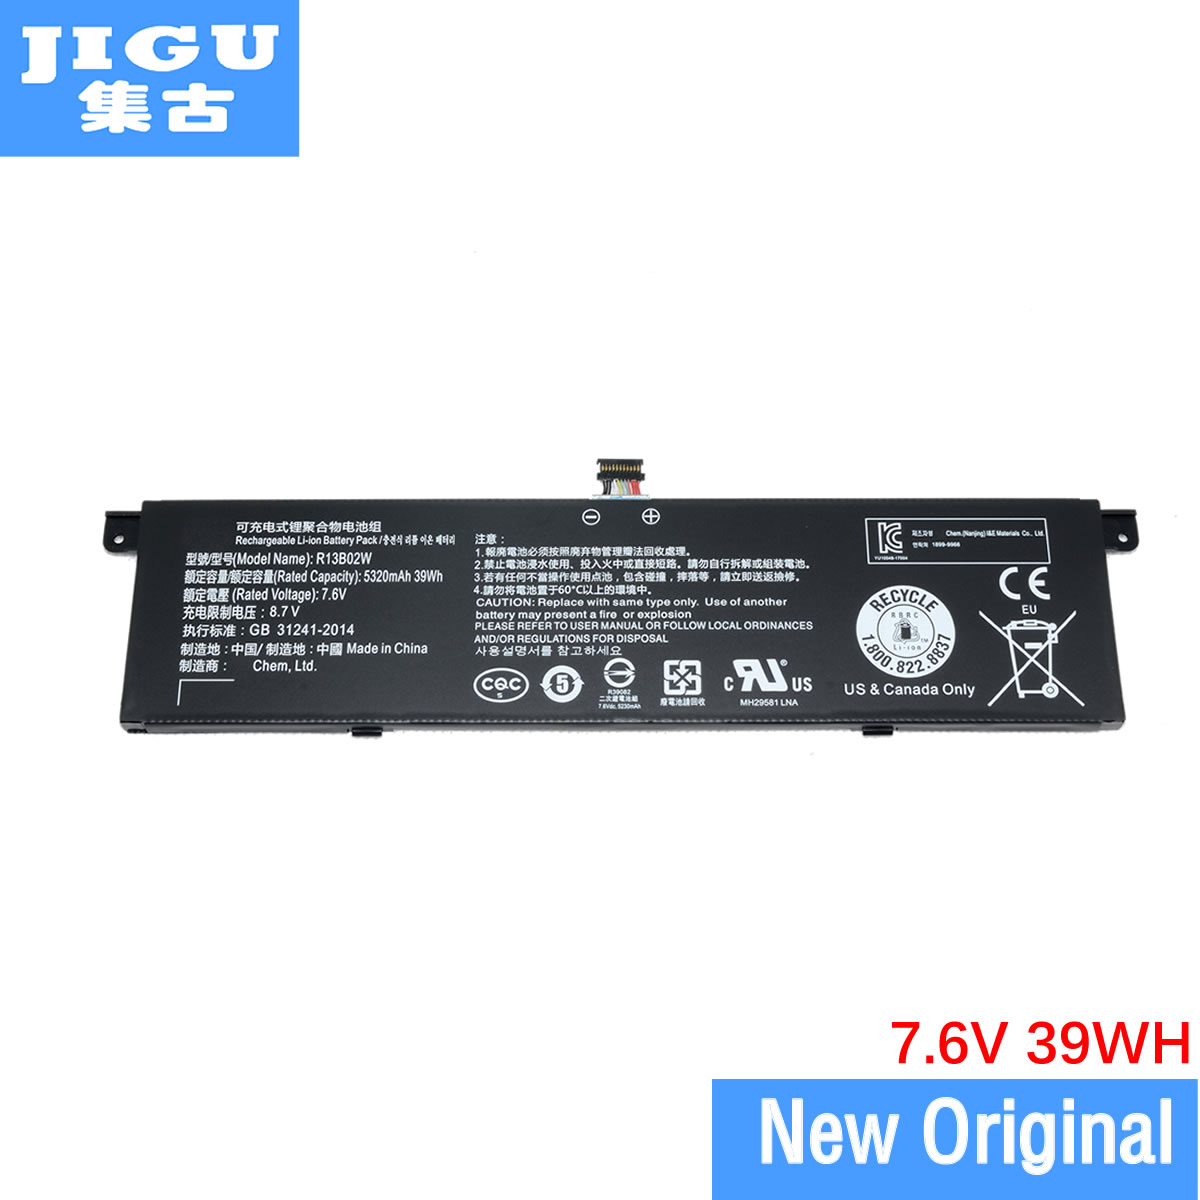 JIGU 7.6V 39Wh 5107mAh/5230mAh Original R13B02W R13B01W Laptop Battery For Xiaomi Mi Air 13.3